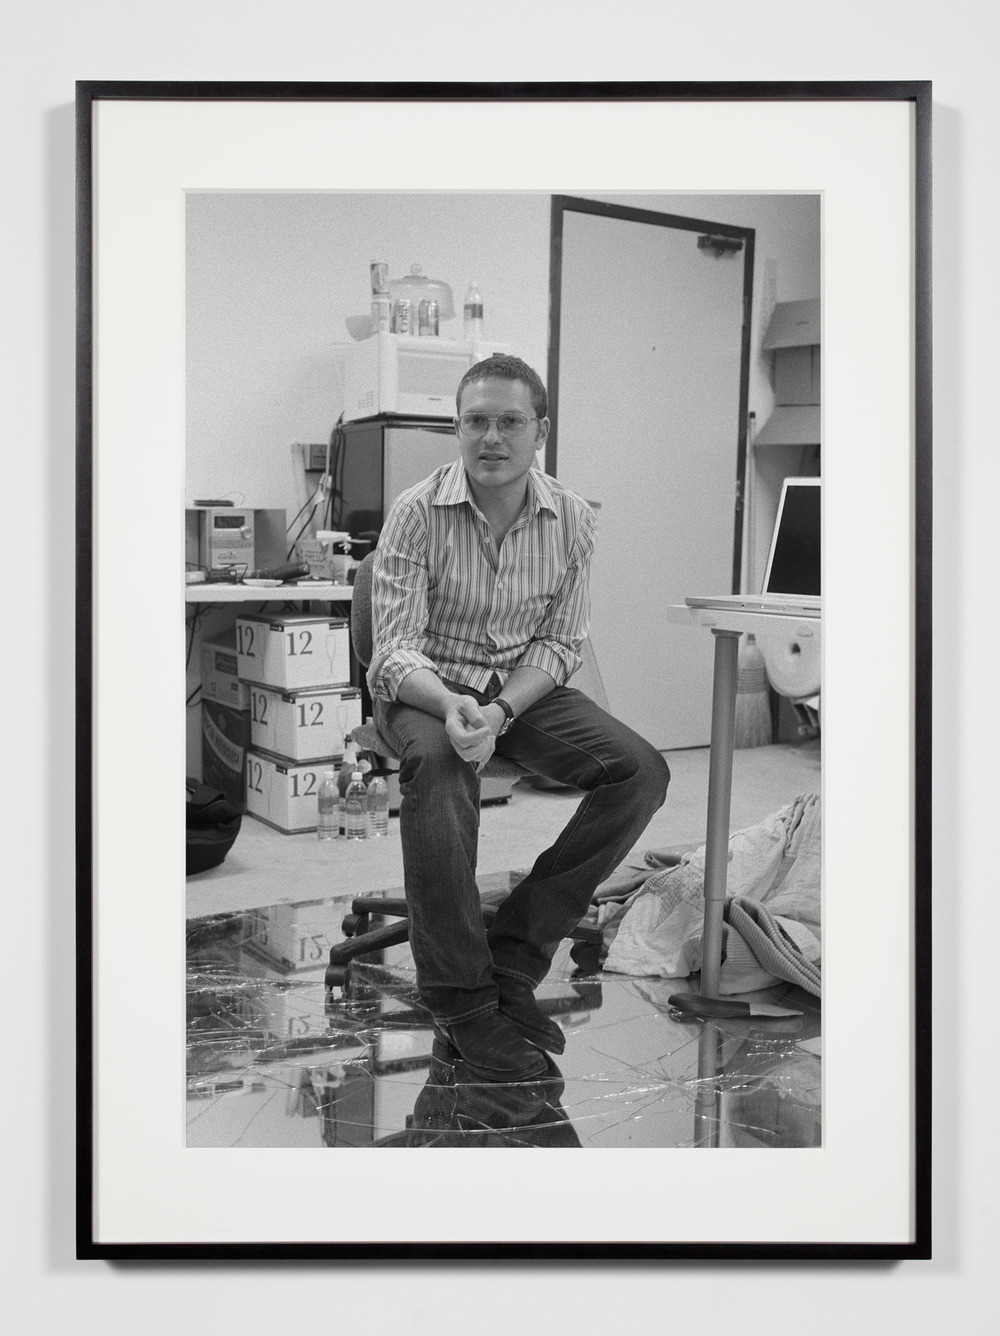 Artist (KFH), Los Angeles, California, July 9, 2008    2008   Epson Ultrachrome K3 archival ink jet print on Hahnemühle Photo Rag paper  36 3/8 x 26 3/8 inches   Industrial Portraits, 2008–